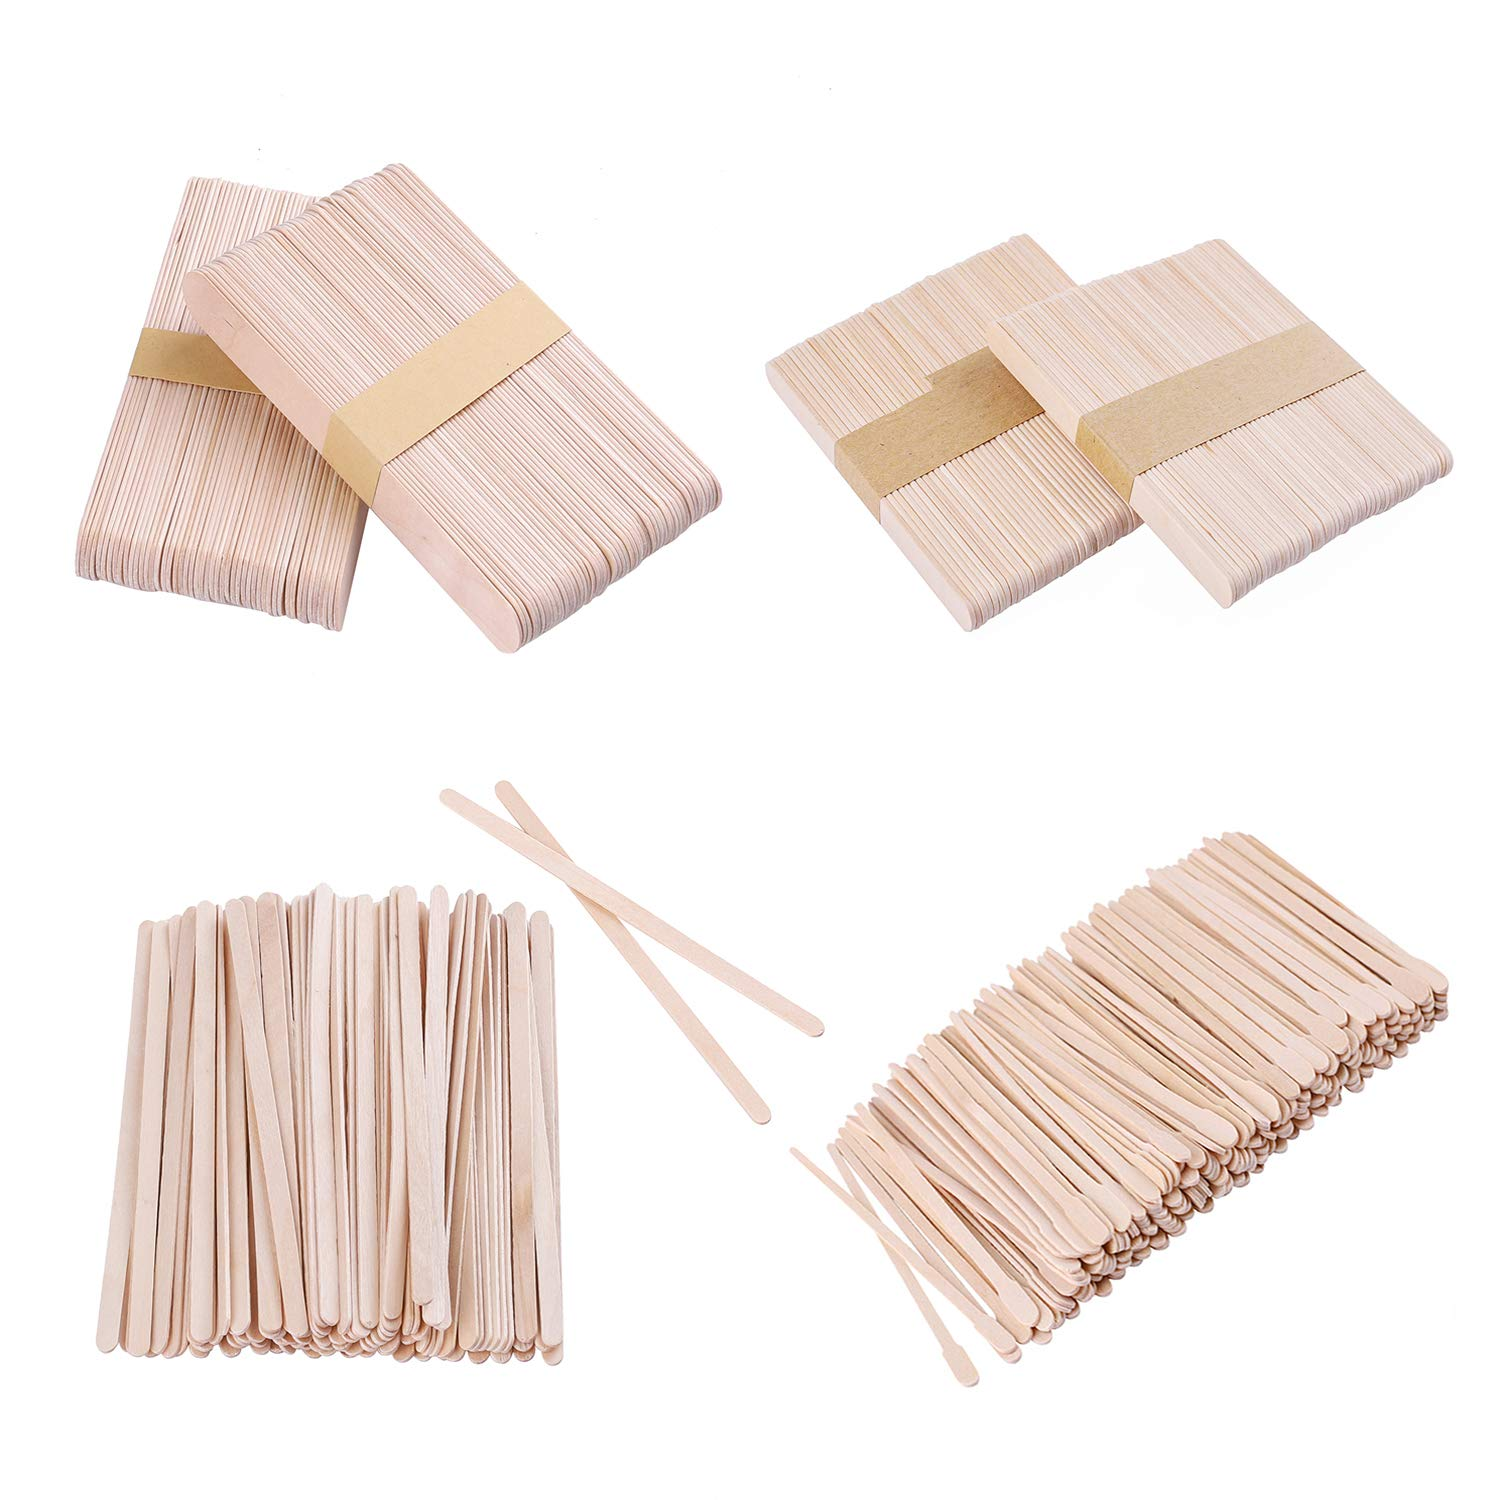 Whaline 500 Pieces Assorted Wax Spatulas Wax Applicator Sticks Wood Craft Sticks, Large, Medium, Small, 4 Style